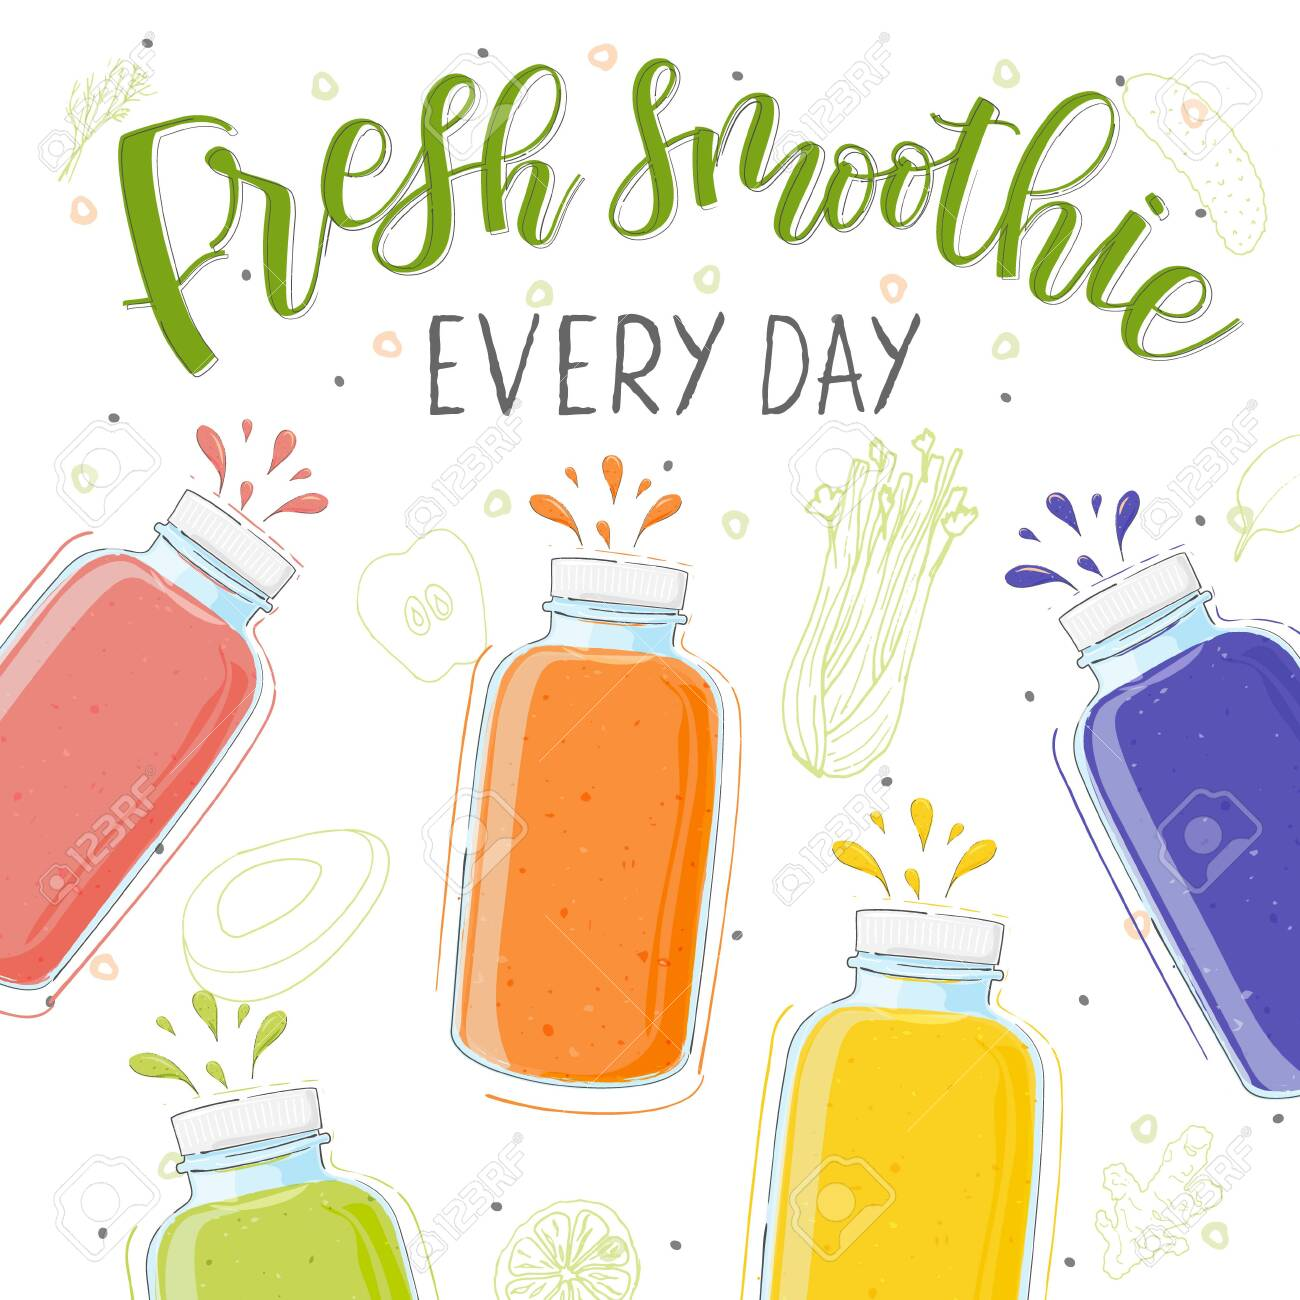 Fresh smoothie in different bottles. Every day. Superfoods and health or detox diet food concept in doodle style. - 140701830